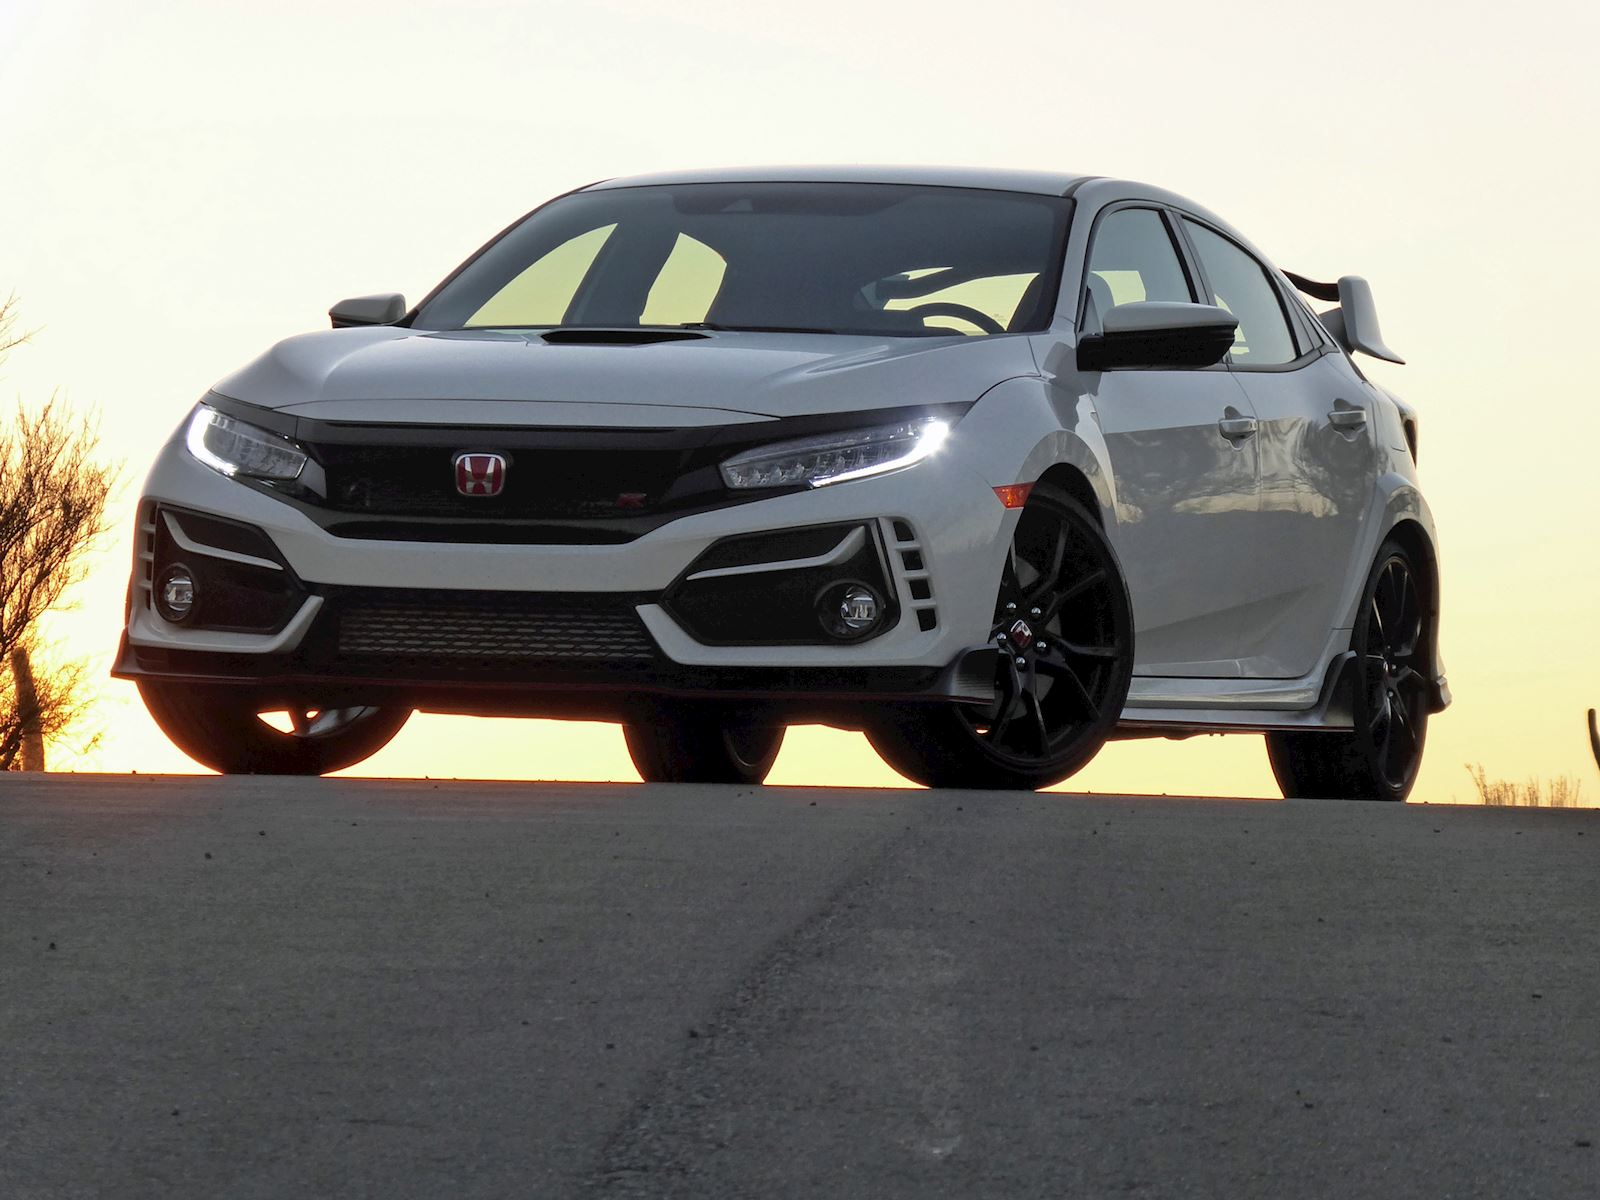 2021 Honda Civic Type R front view